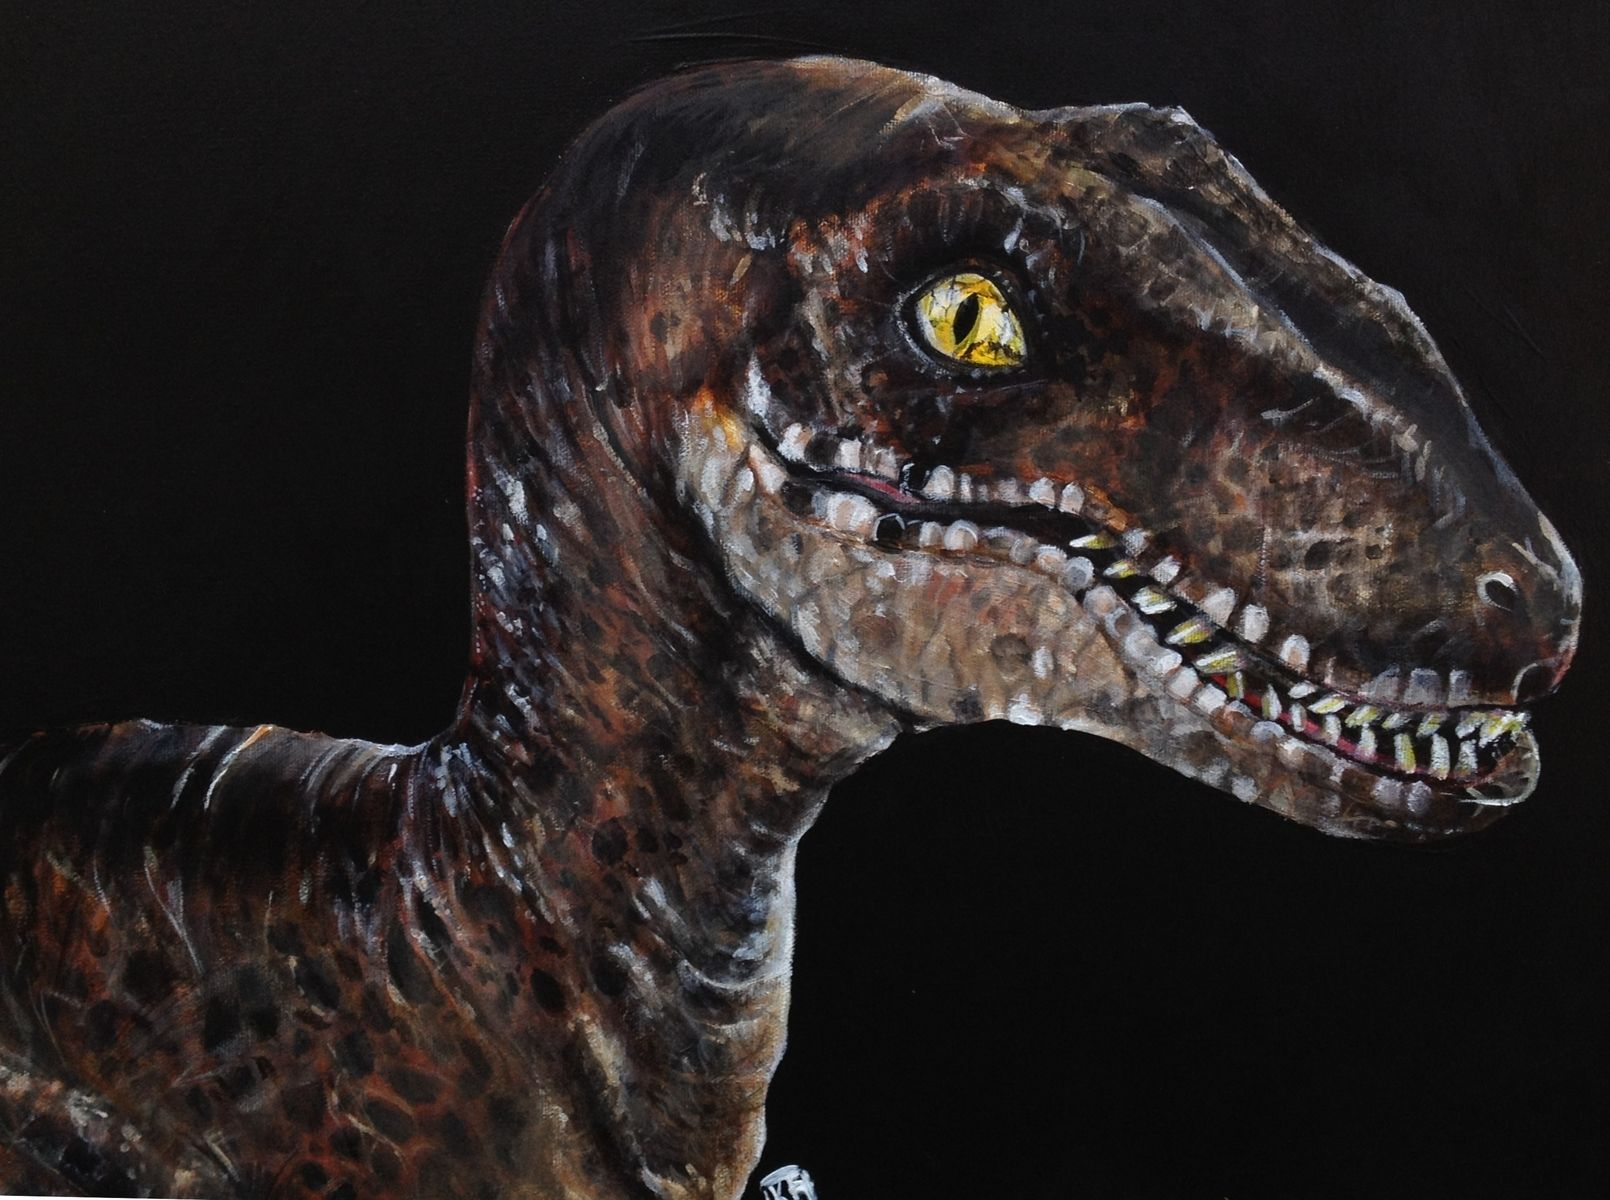 Handmade Fun Dinosaur Themed Acrylic Painting By Artwork